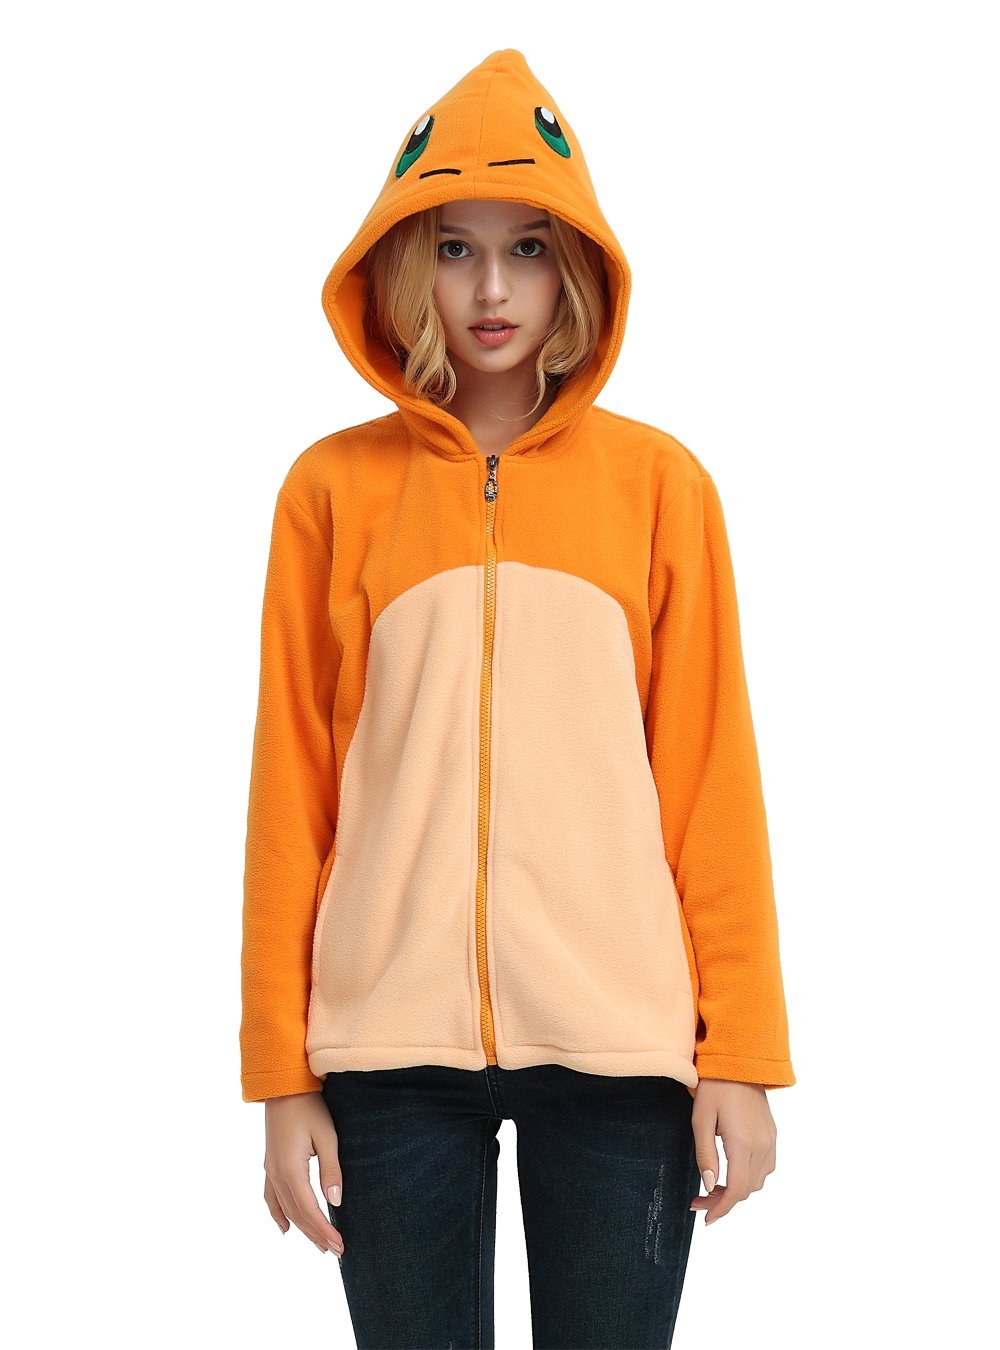 Es Unico Pokemon Charmander Hoodie Jacket for Women, Men and Teenagers(Small)